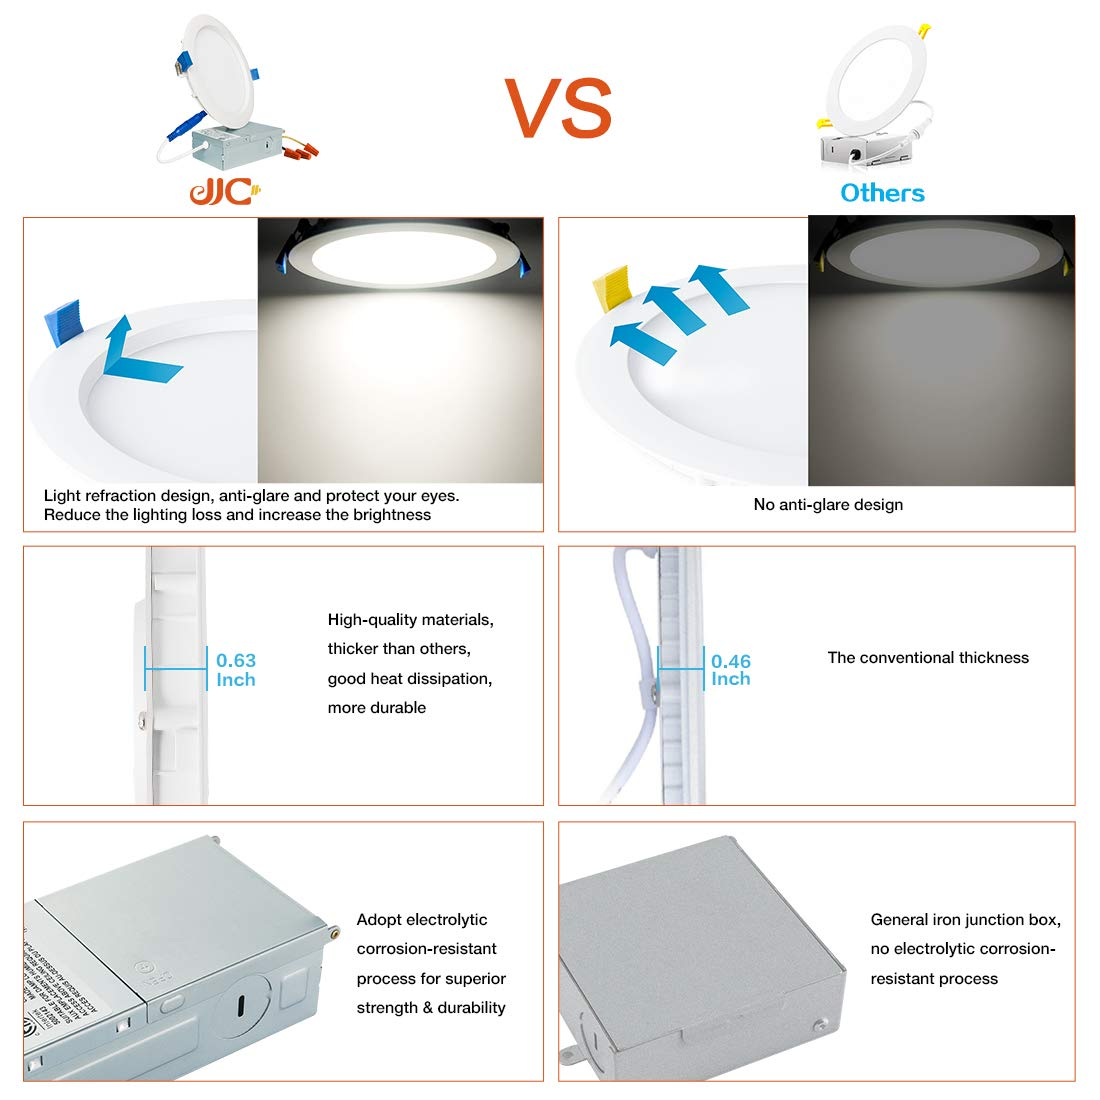 JJC 13W 6 Inch Ultra Thin Led Recessed Lights with Junction Box,5000K Daylight White, CRI90+, IC Rated,850 Lumens 65W Eqv. Dimmable Led Downlight ETL and Energy Star Certified